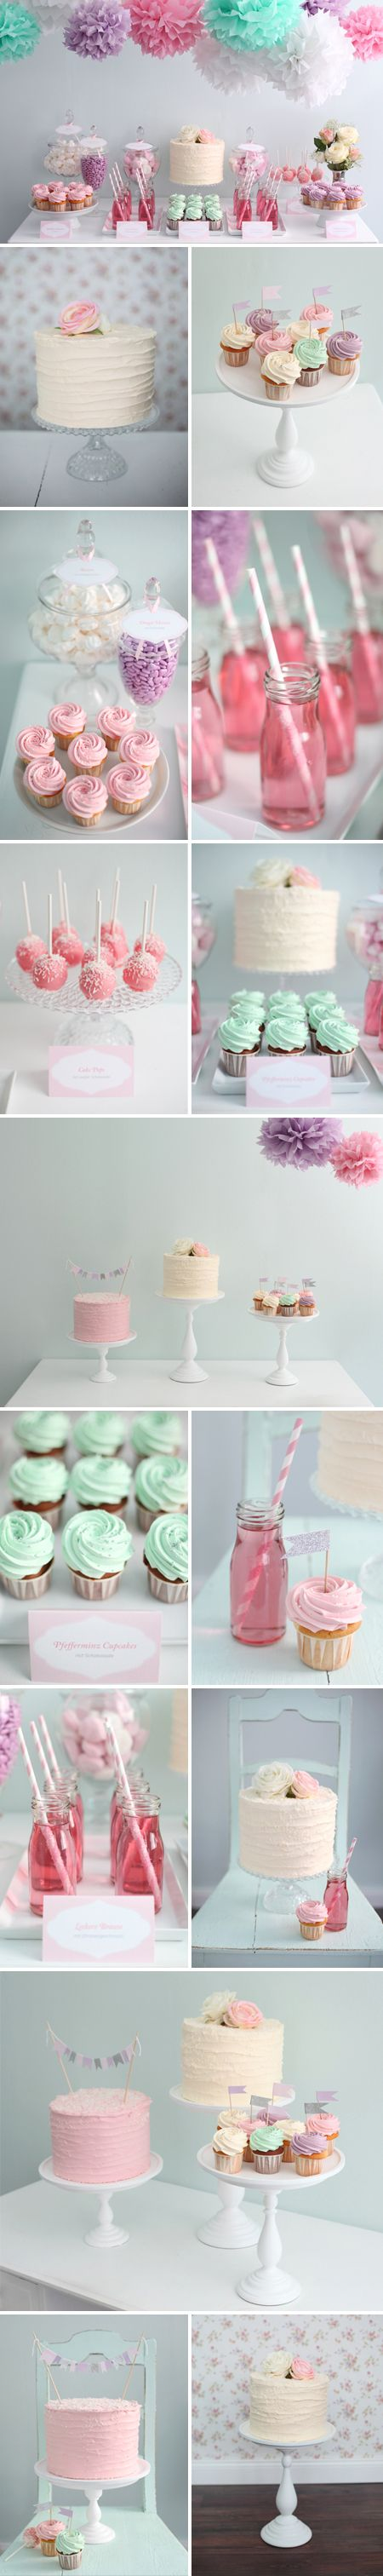 Dessert table - would change the colors to various shades of aqua for my sweet little boy. I am crazy for already planning his 1st birthday party - he's just 5 weeks old!